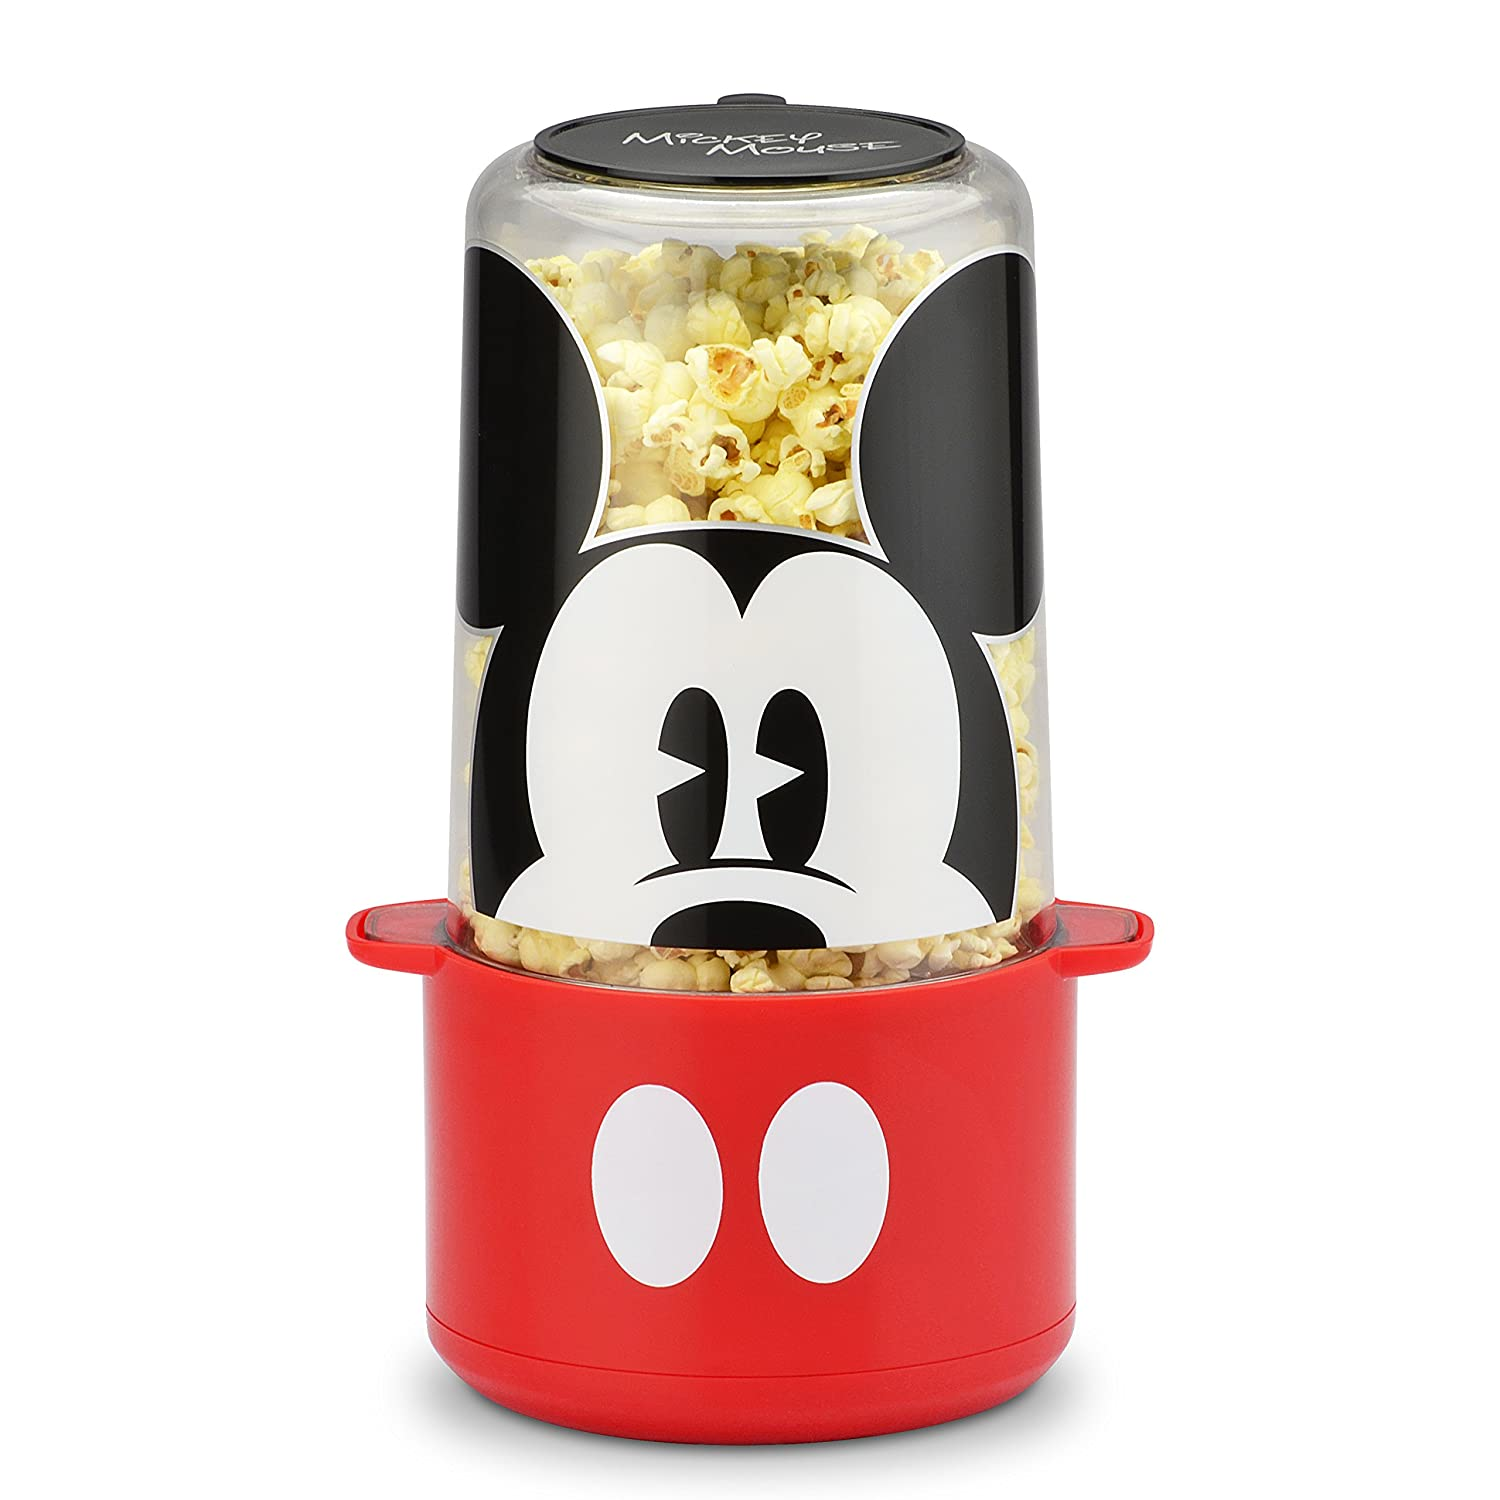 Disney DCM-60CN Mickey Mouse Popcorn Popper, Red